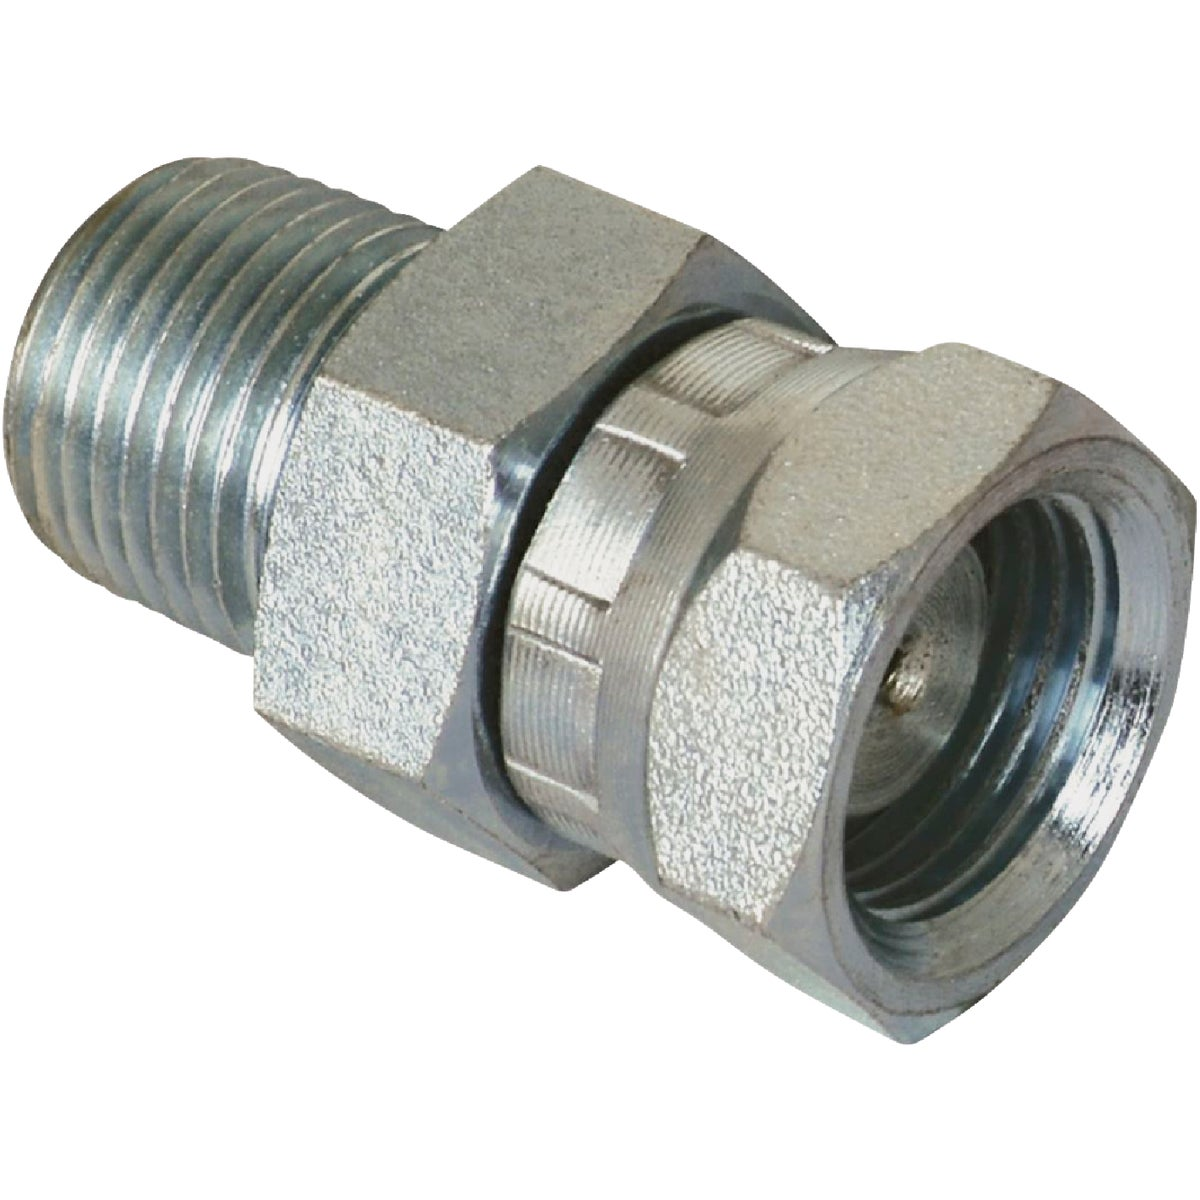 1/2MX1/2F SW HYD ADAPTER - 39004375 by Apache Hose Belting